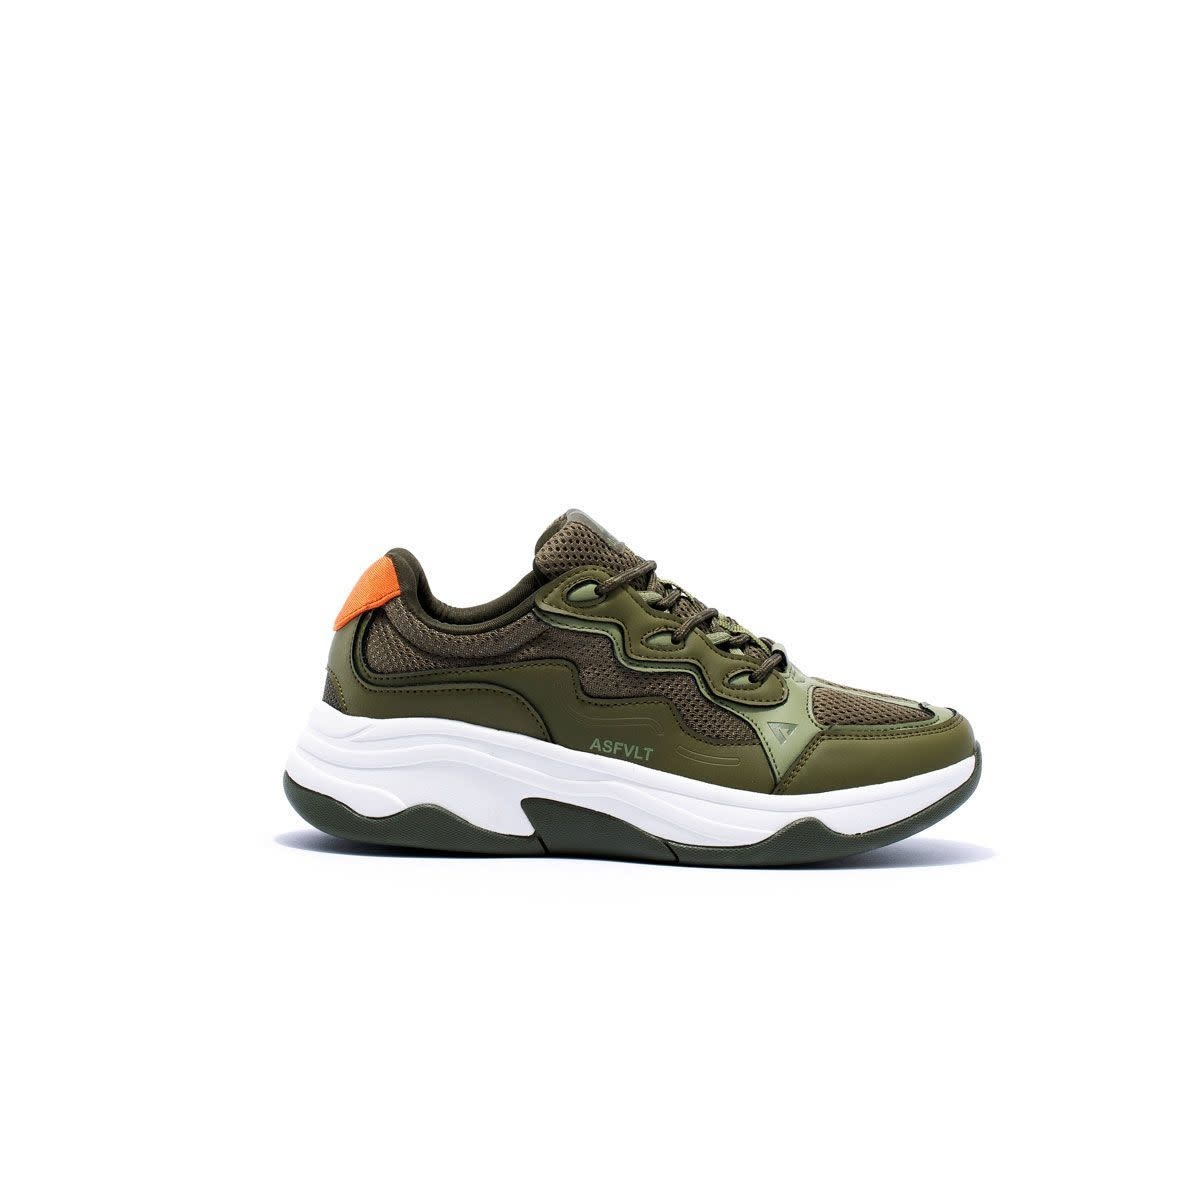 ASFVLT Sneakers Asfvlt Onset Sneakers Army Green